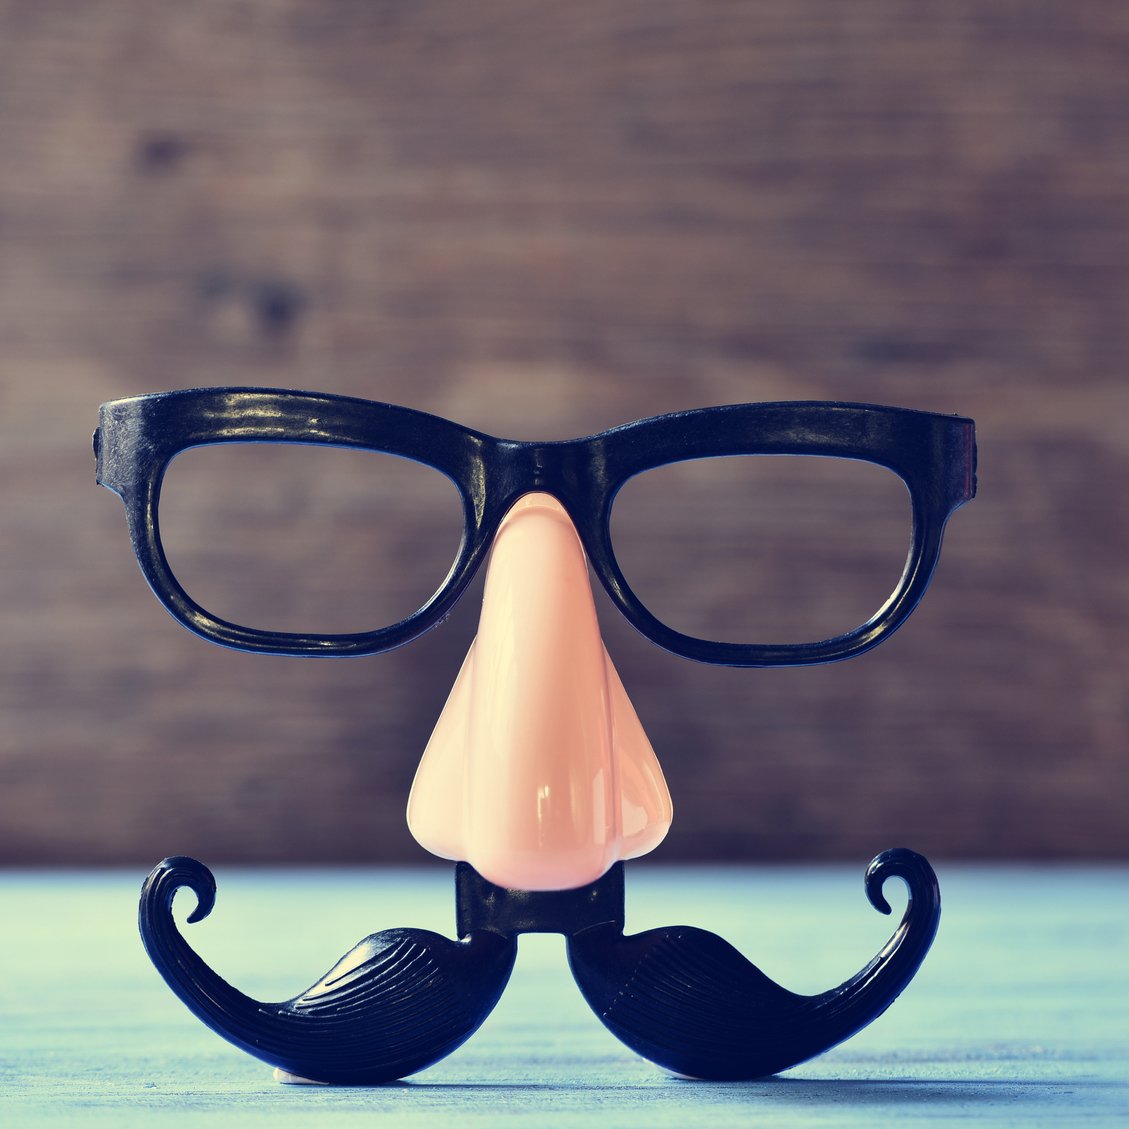 7 Content Mistakes Make You Look Silly